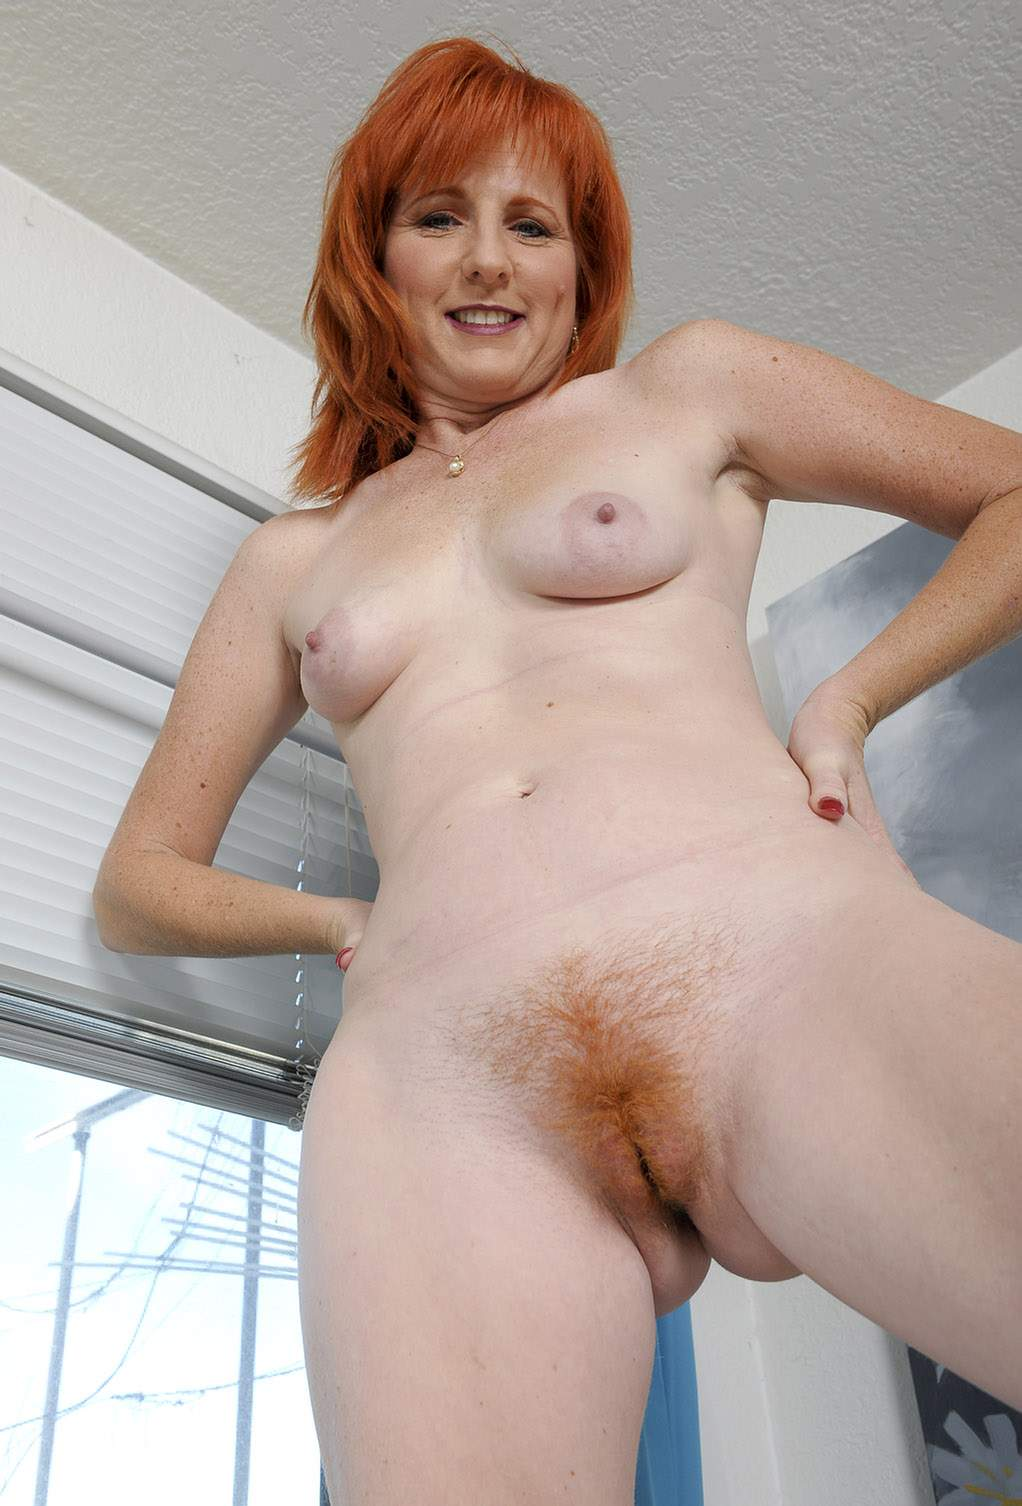 Pictures of hairy pussy women